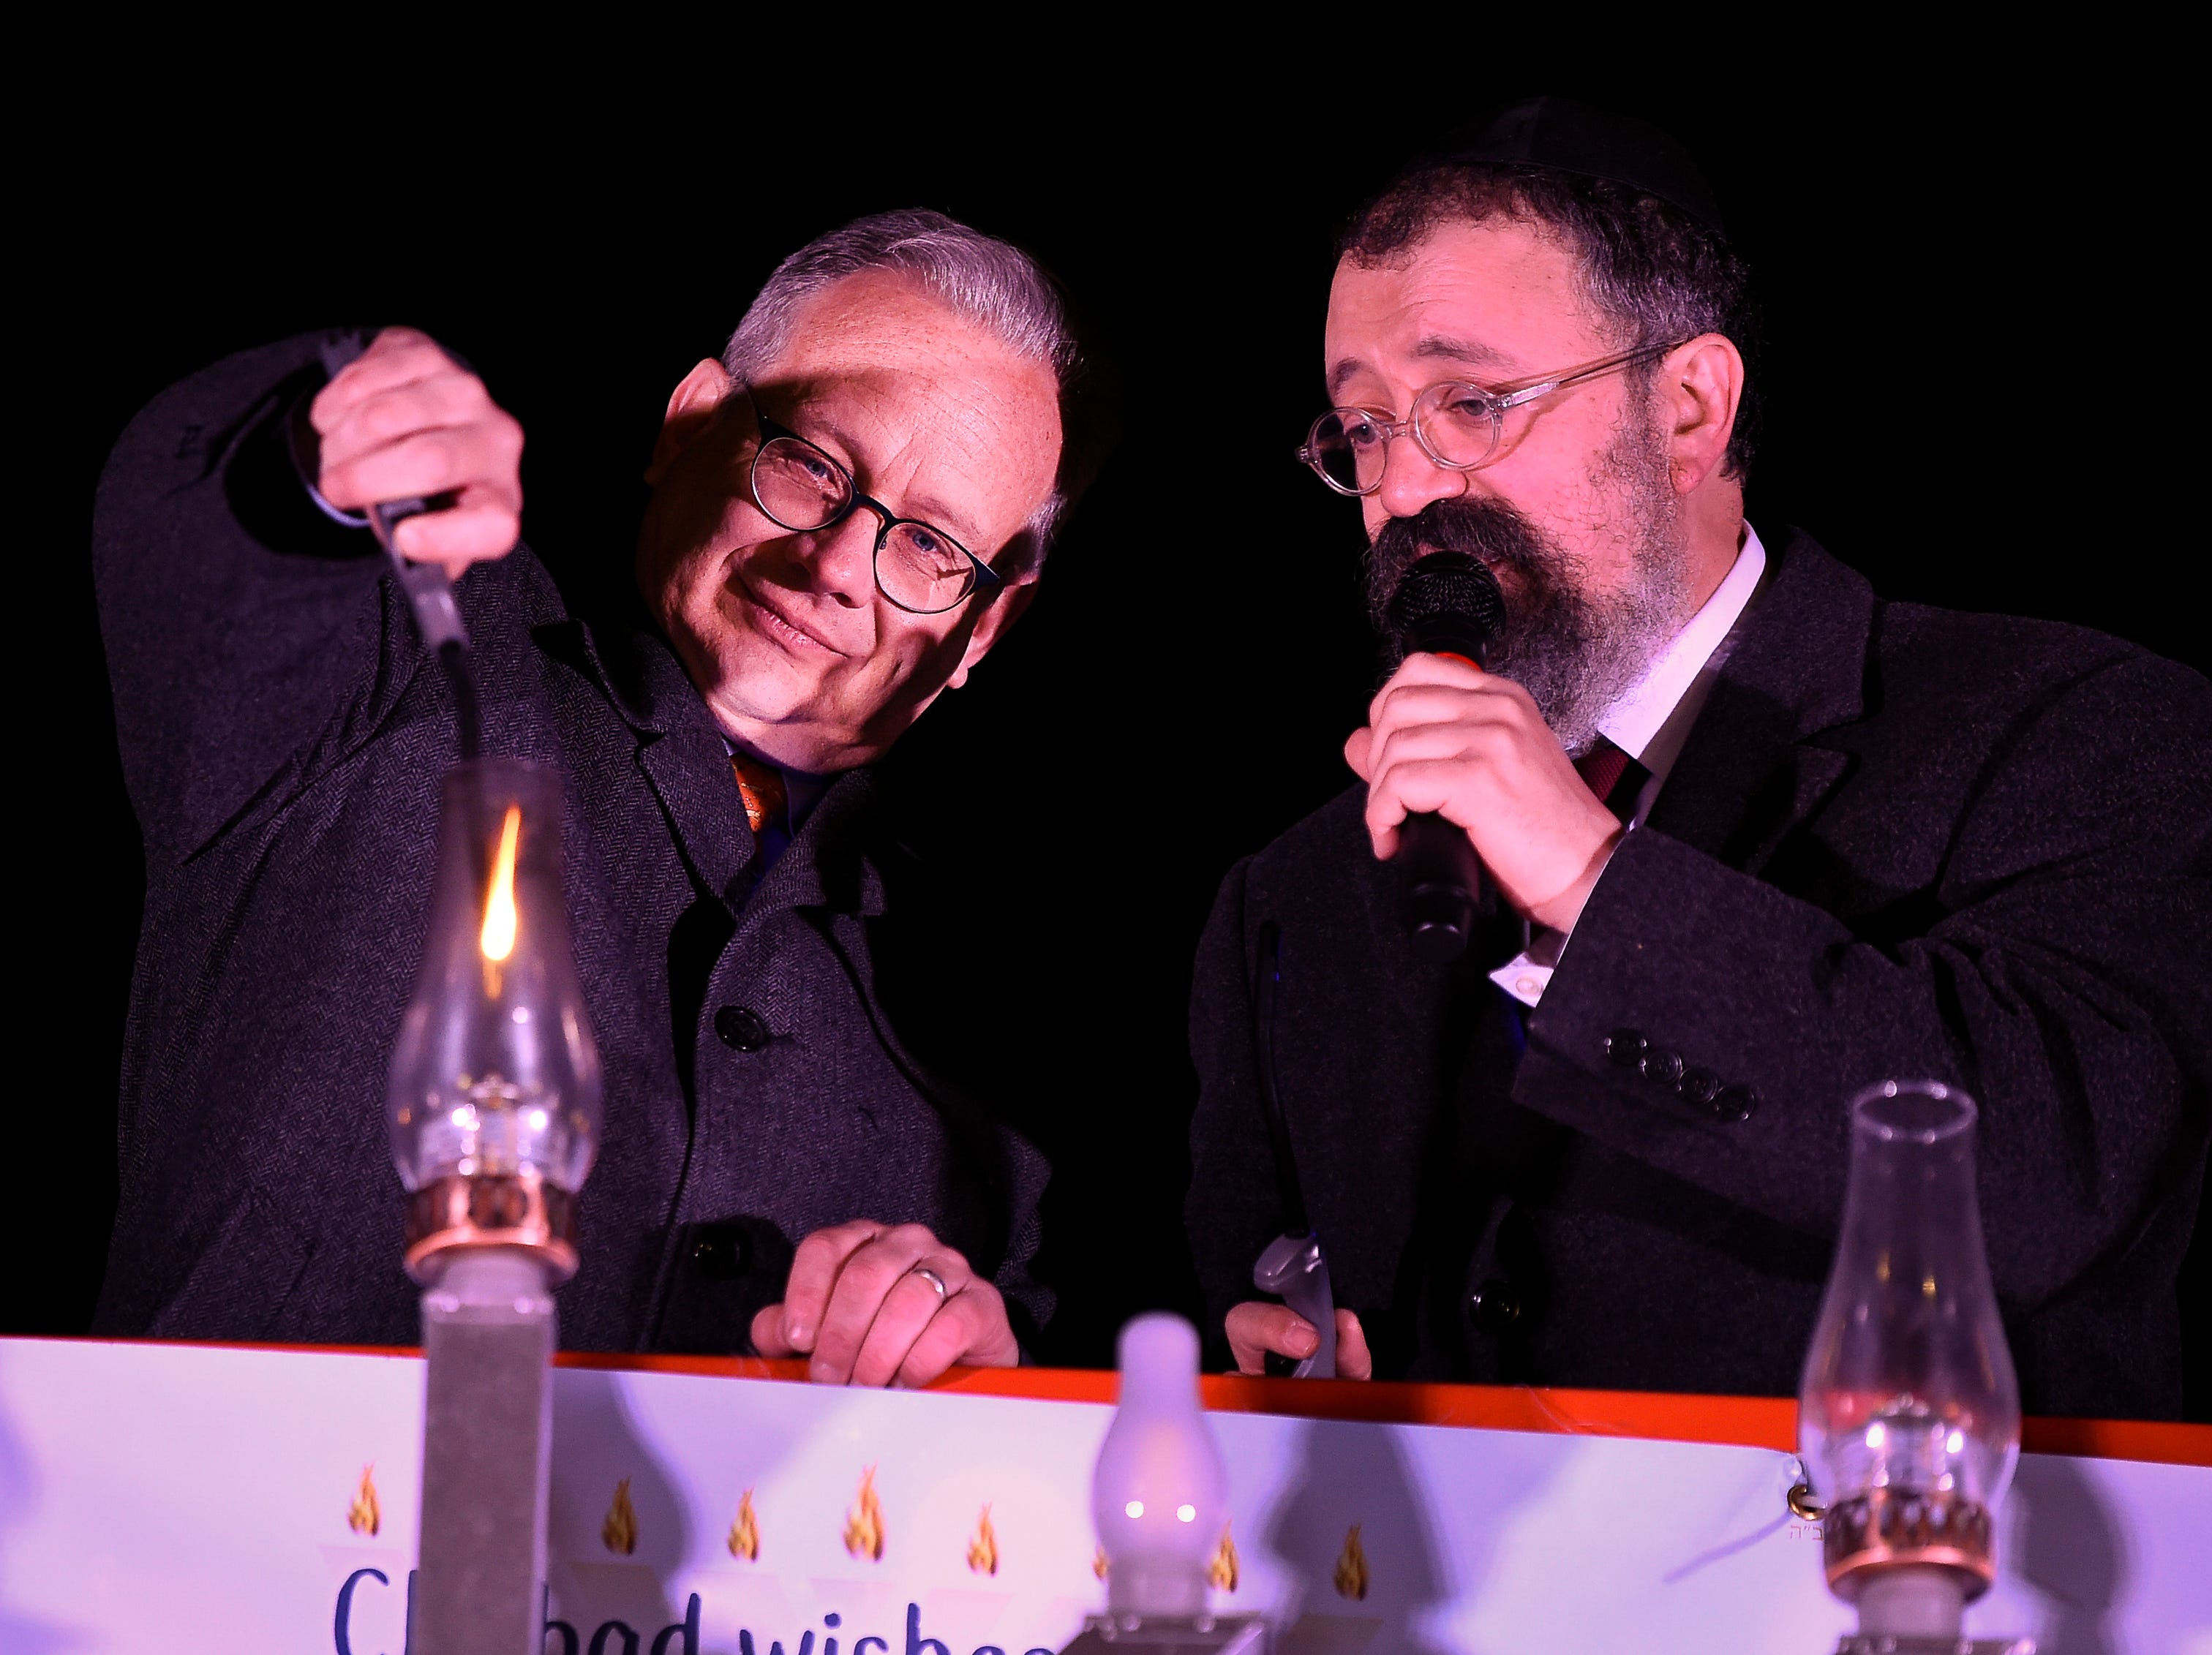 Mayor David Briley and Rabbi Yitzchok Tiechtel light candles during a Chanukah menorah lighting ceremony at Public Square Park Tuesday, Dec. 4, 2018, in Nashville, Tenn.